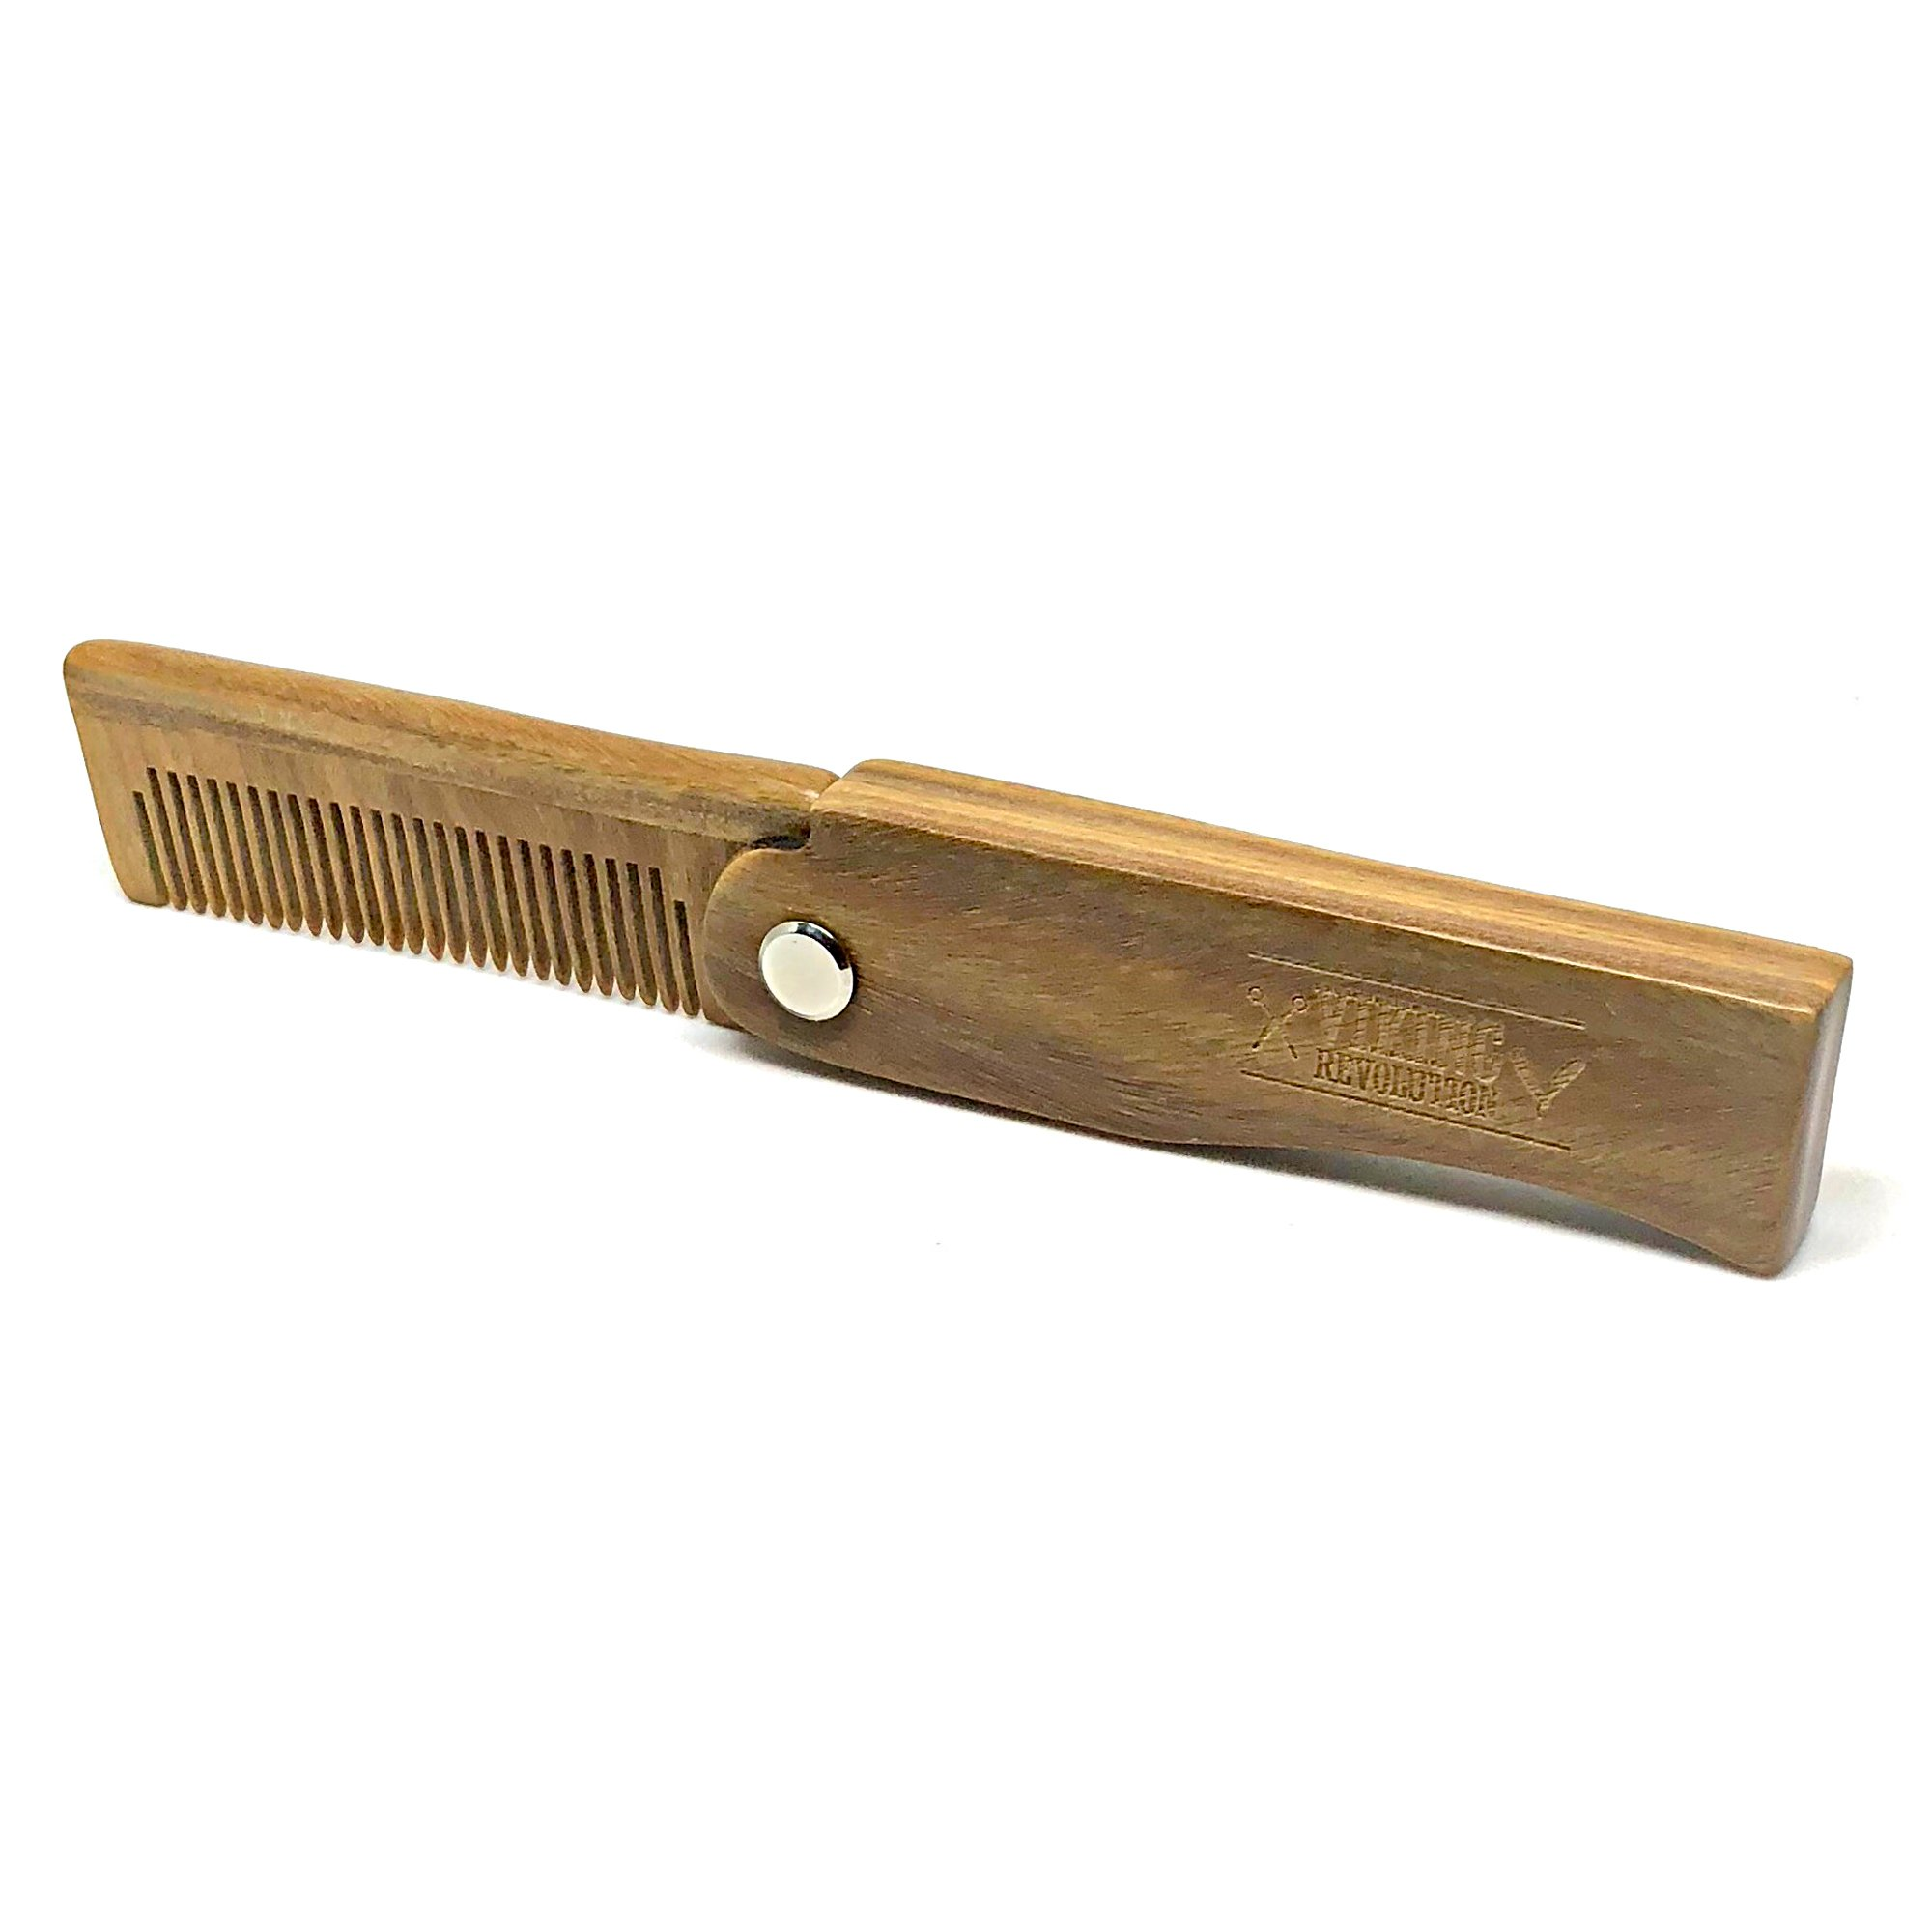 BEST DEAL Folding Beard Comb w/Carrying Pouch for Men - All Natural Wooden  Beard Comb w/Gift Box - Green Sandalwood Comb for Grooming & Combing Hair,